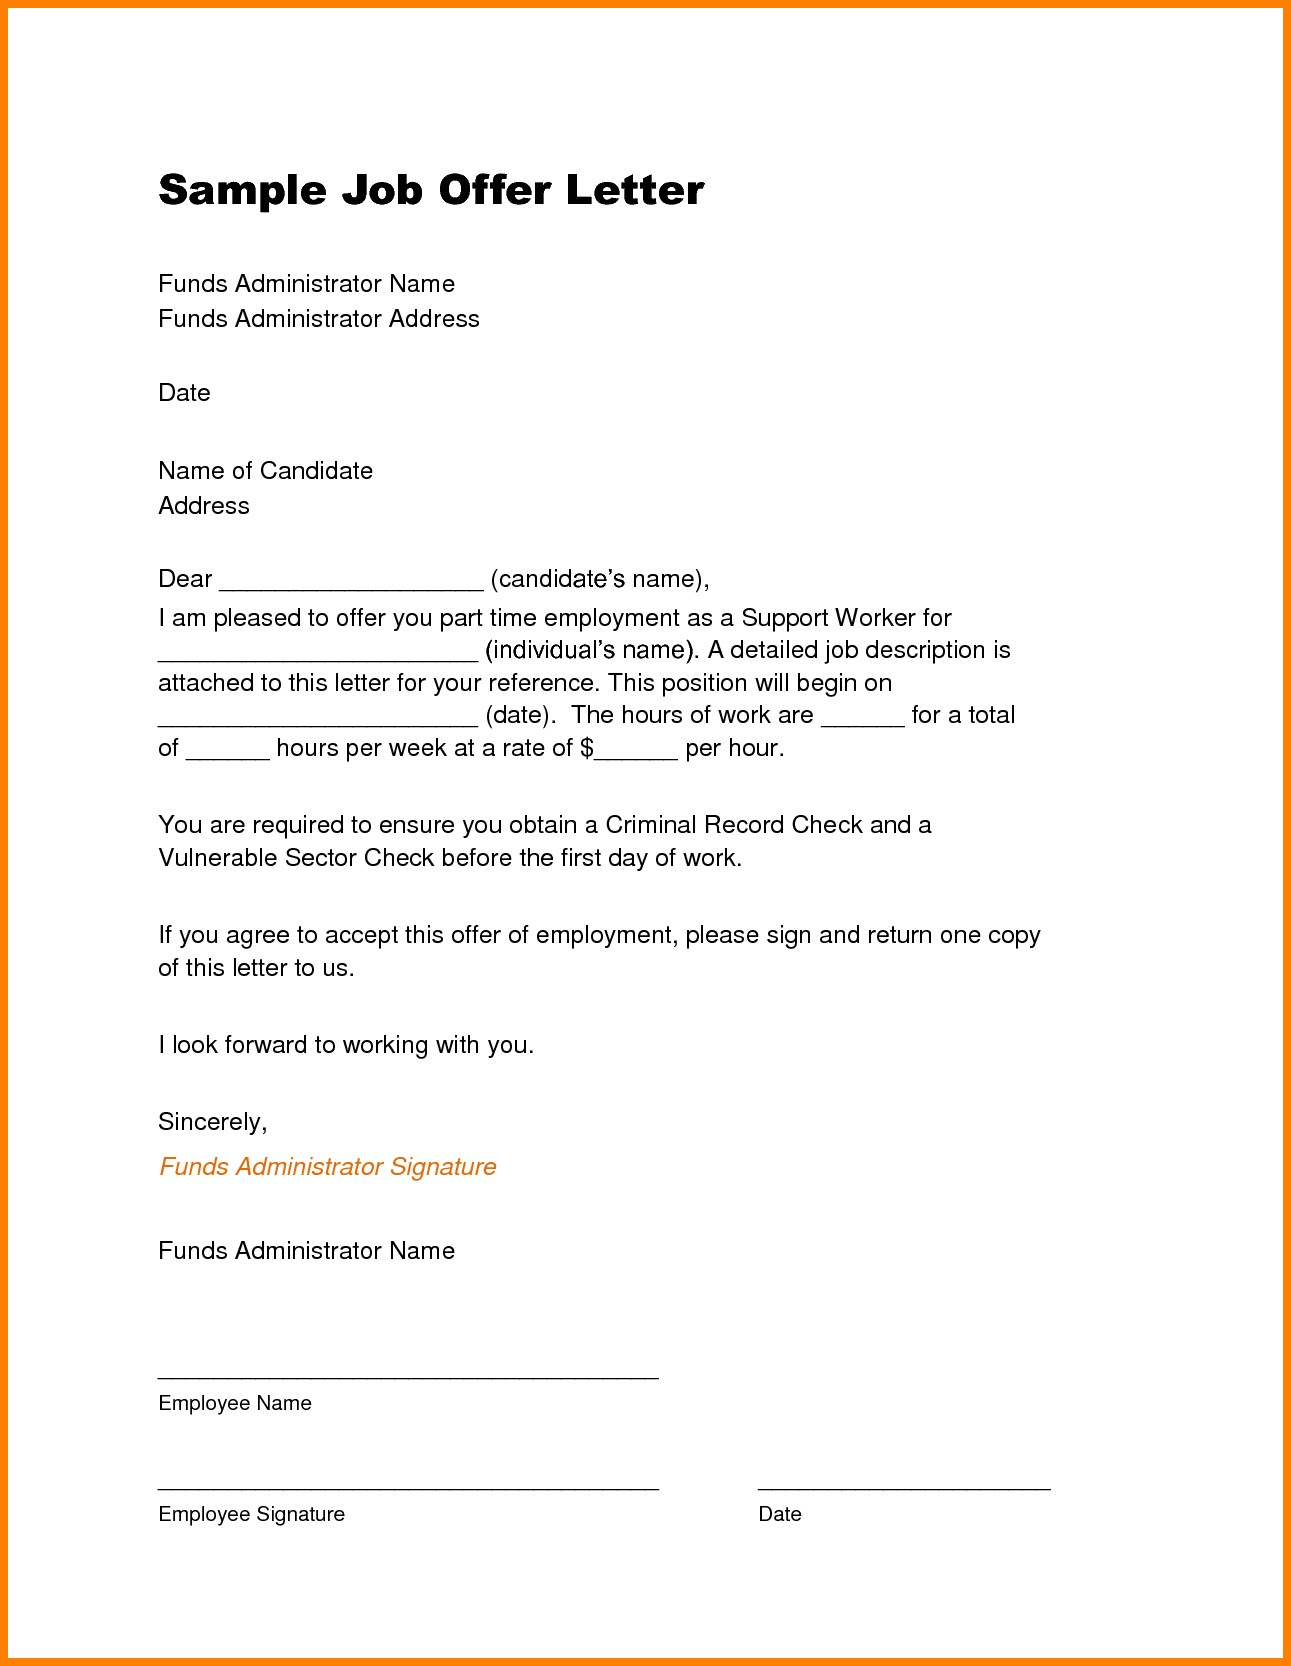 Job offer letter template pdf examples letter cover templates job offer letter template pdf sample offer letter pelosleclaire maxwellsz